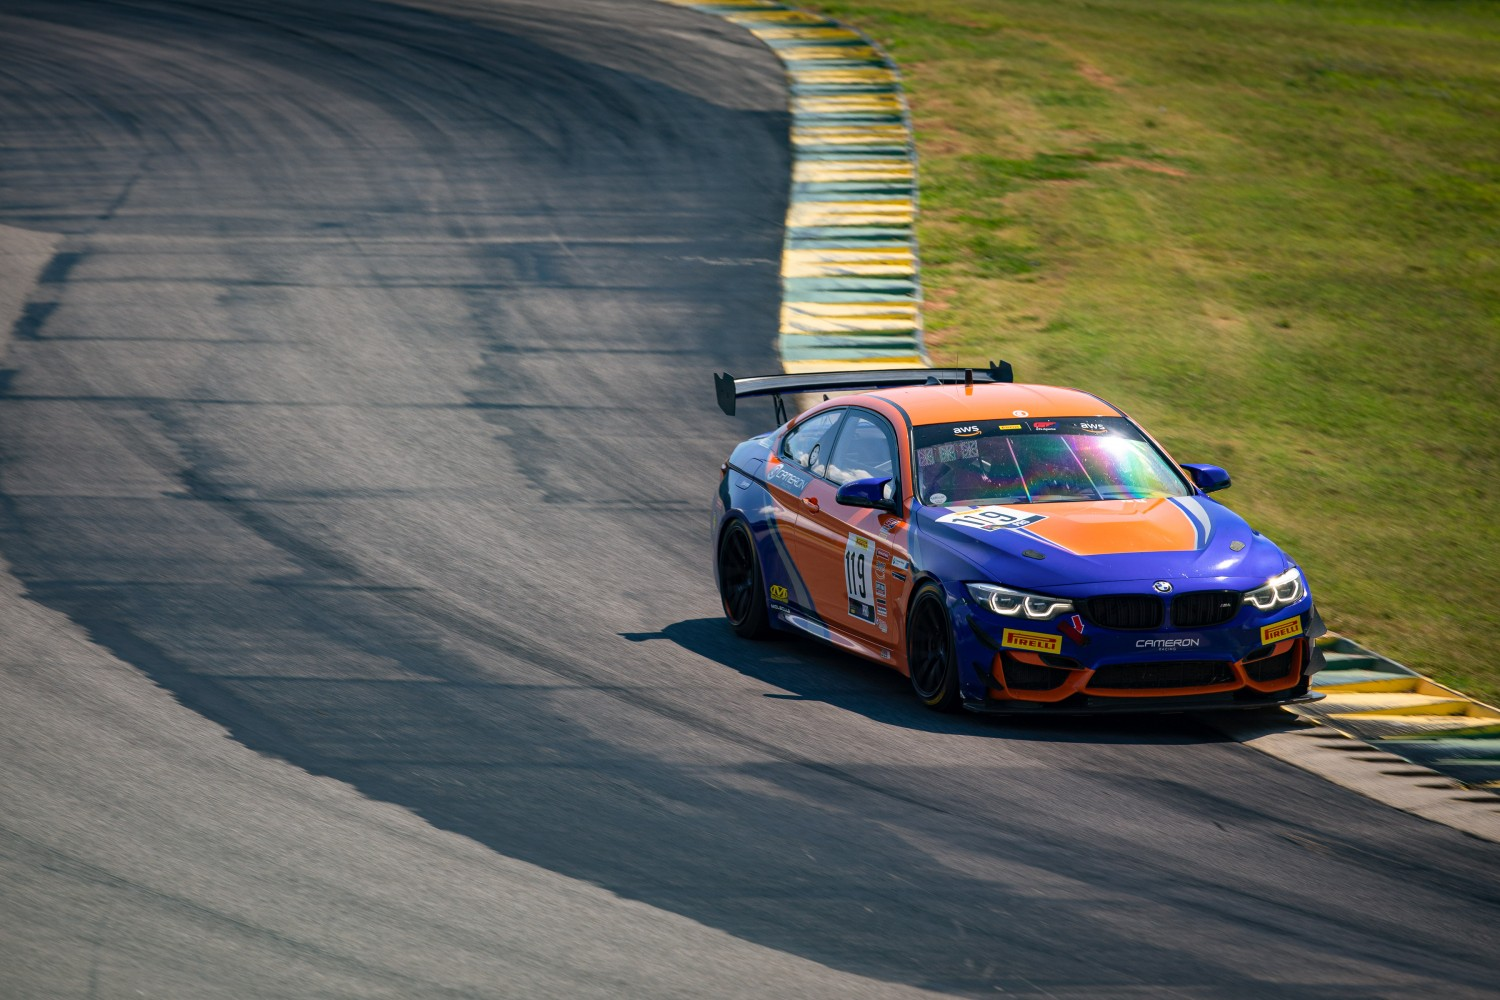 #119 GT4 Sprint, Am, Stephen Cameron Racing, Sean Quinlan, BMW M4 GT4\, SRO VIR 2020, Alton VA